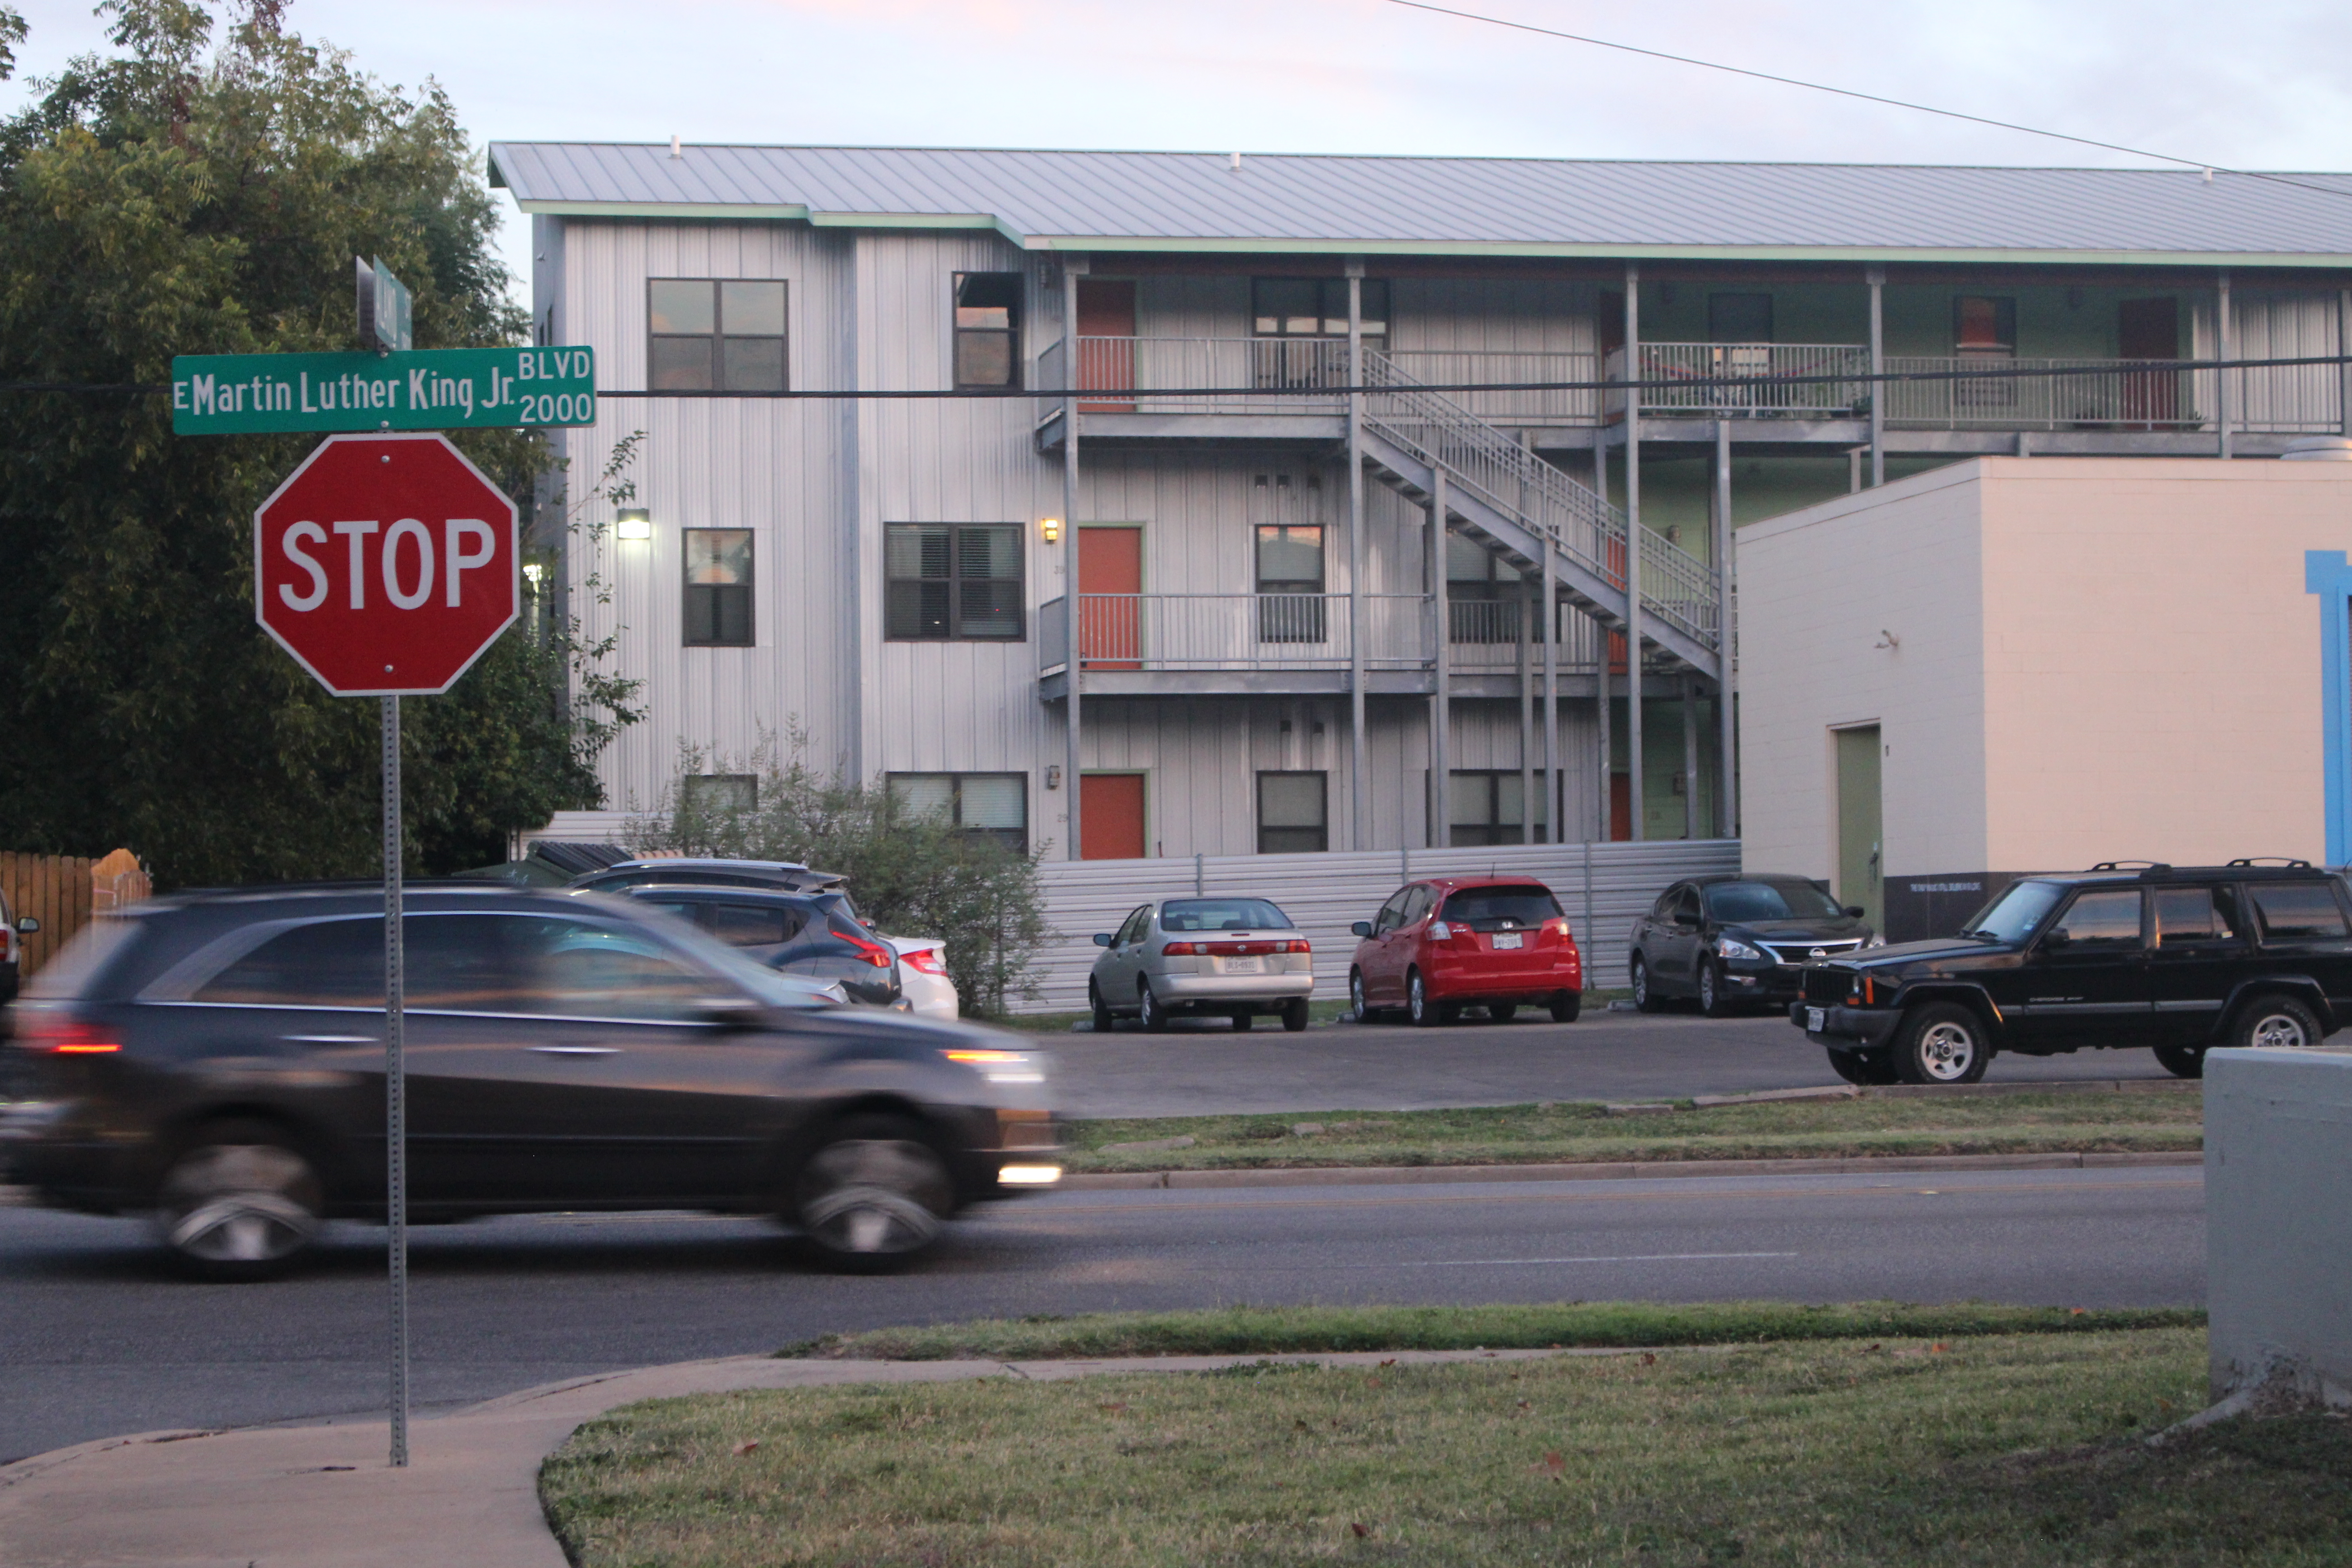 Several  apartment complexes have sprung up in recent years in East Austin